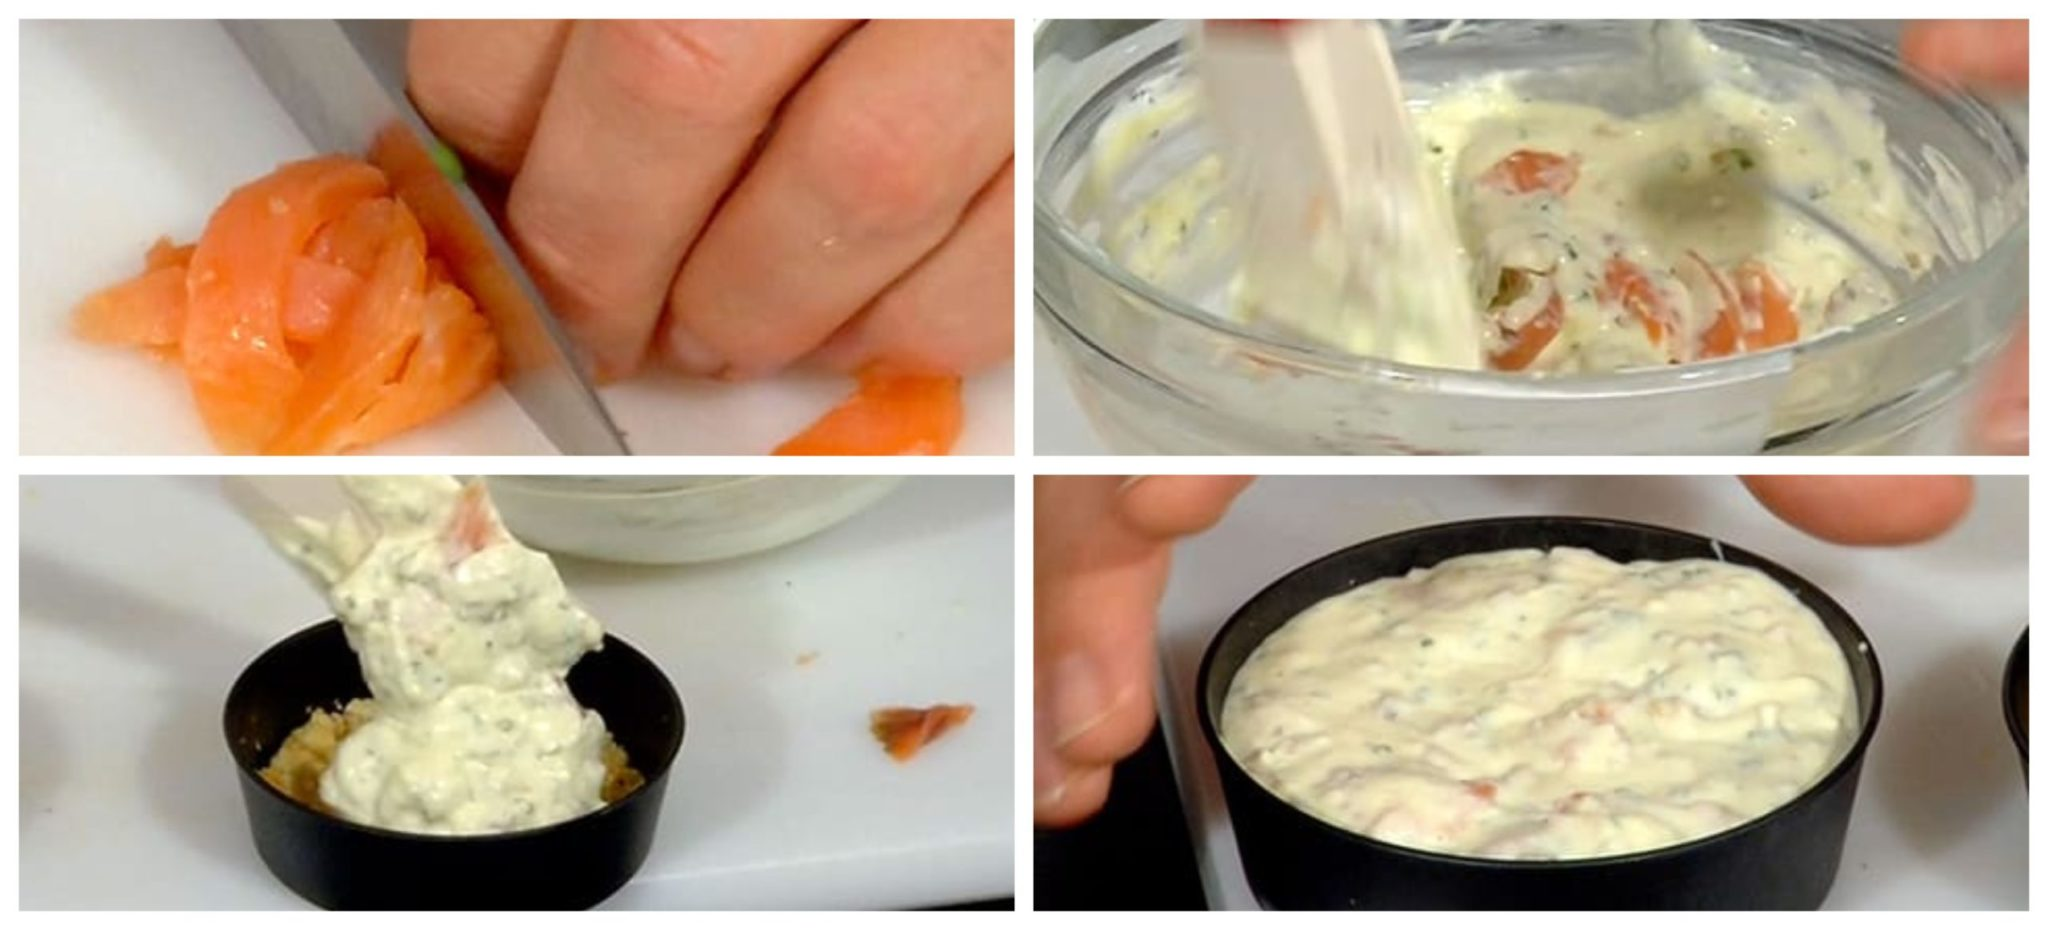 Filling the molds with the cheese mixture